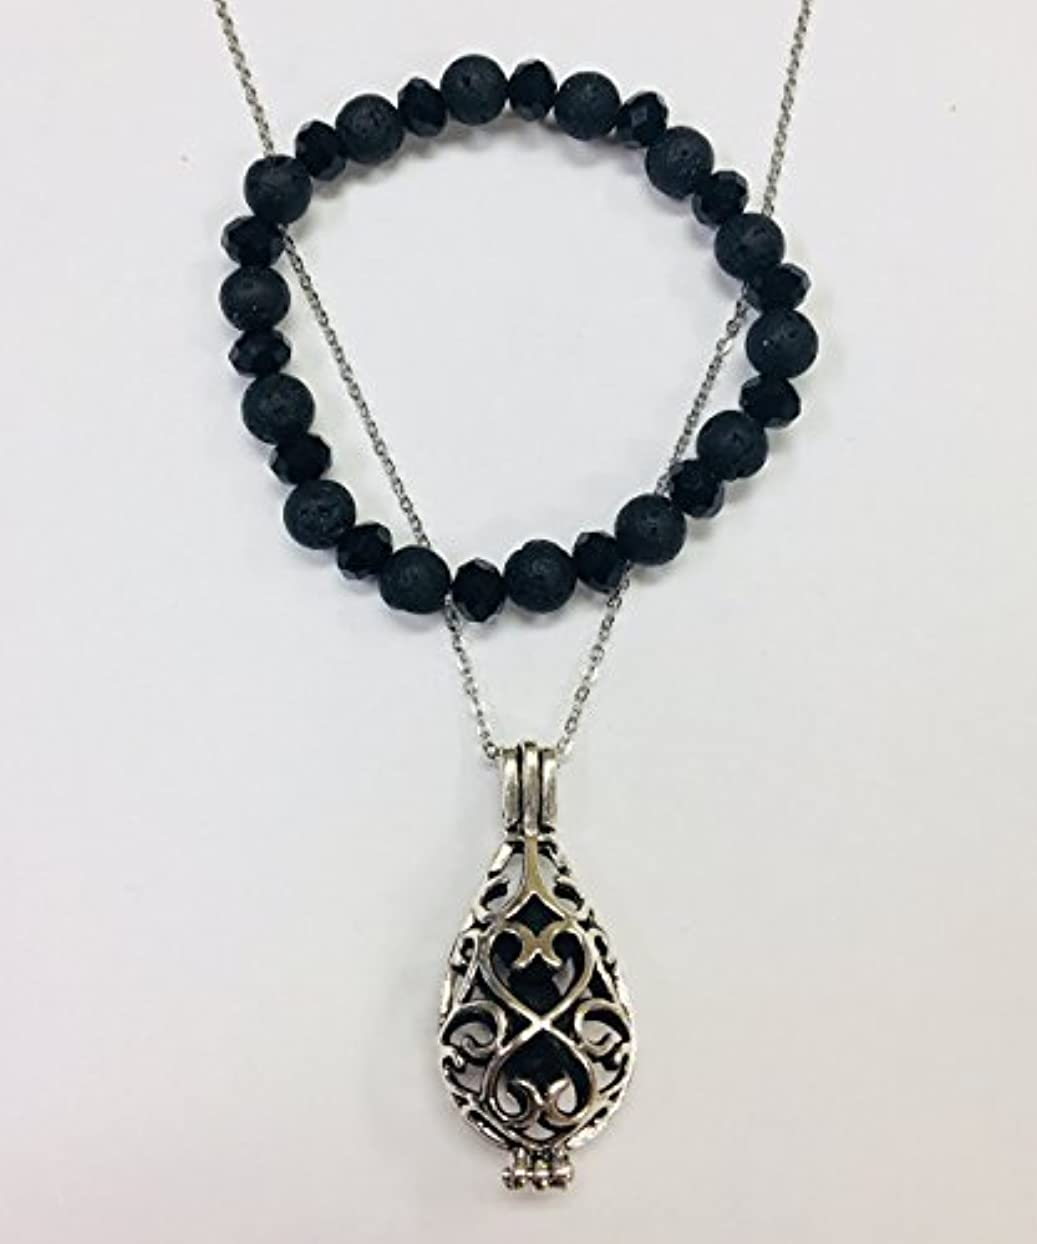 アノイ確率切断するEssential Oil Set - Lava Bead Diffuser Locket Necklace and Lava Bead Stretch Bracelet [並行輸入品]